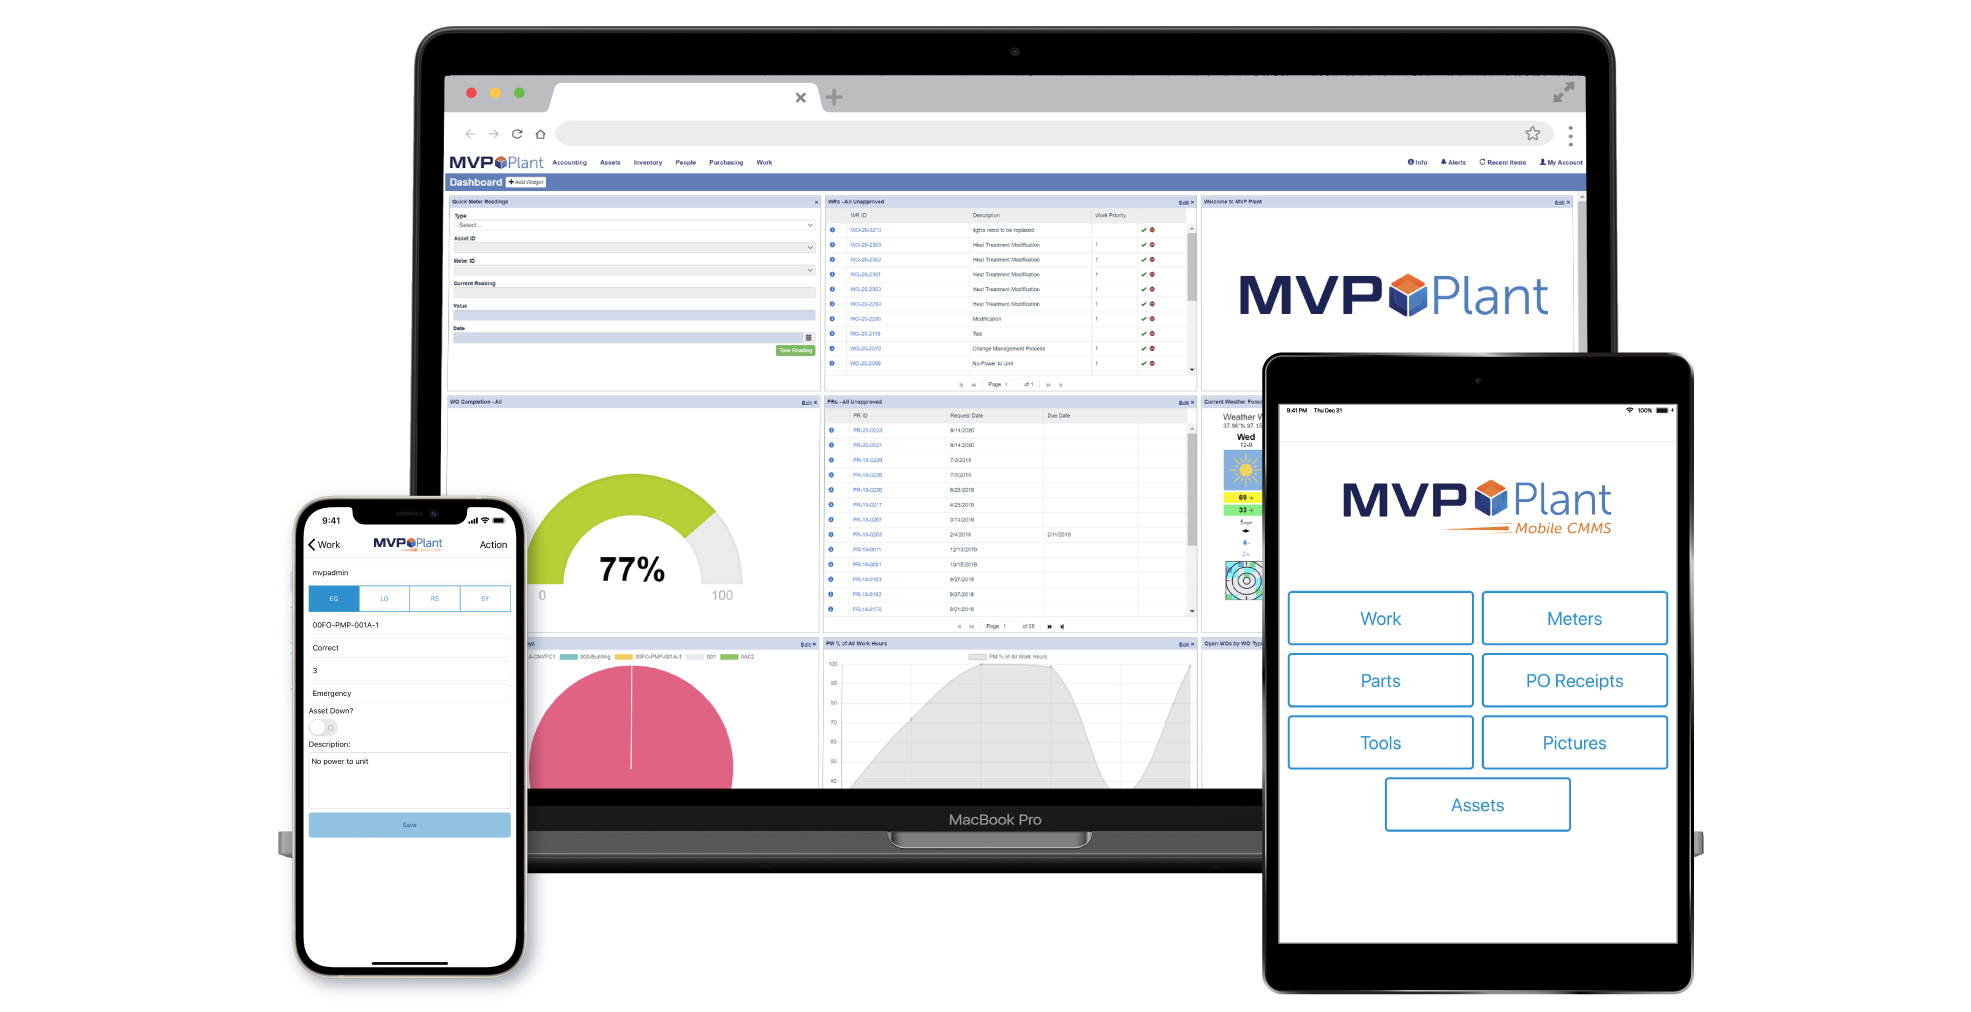 MVP Plant web-based CMMS software